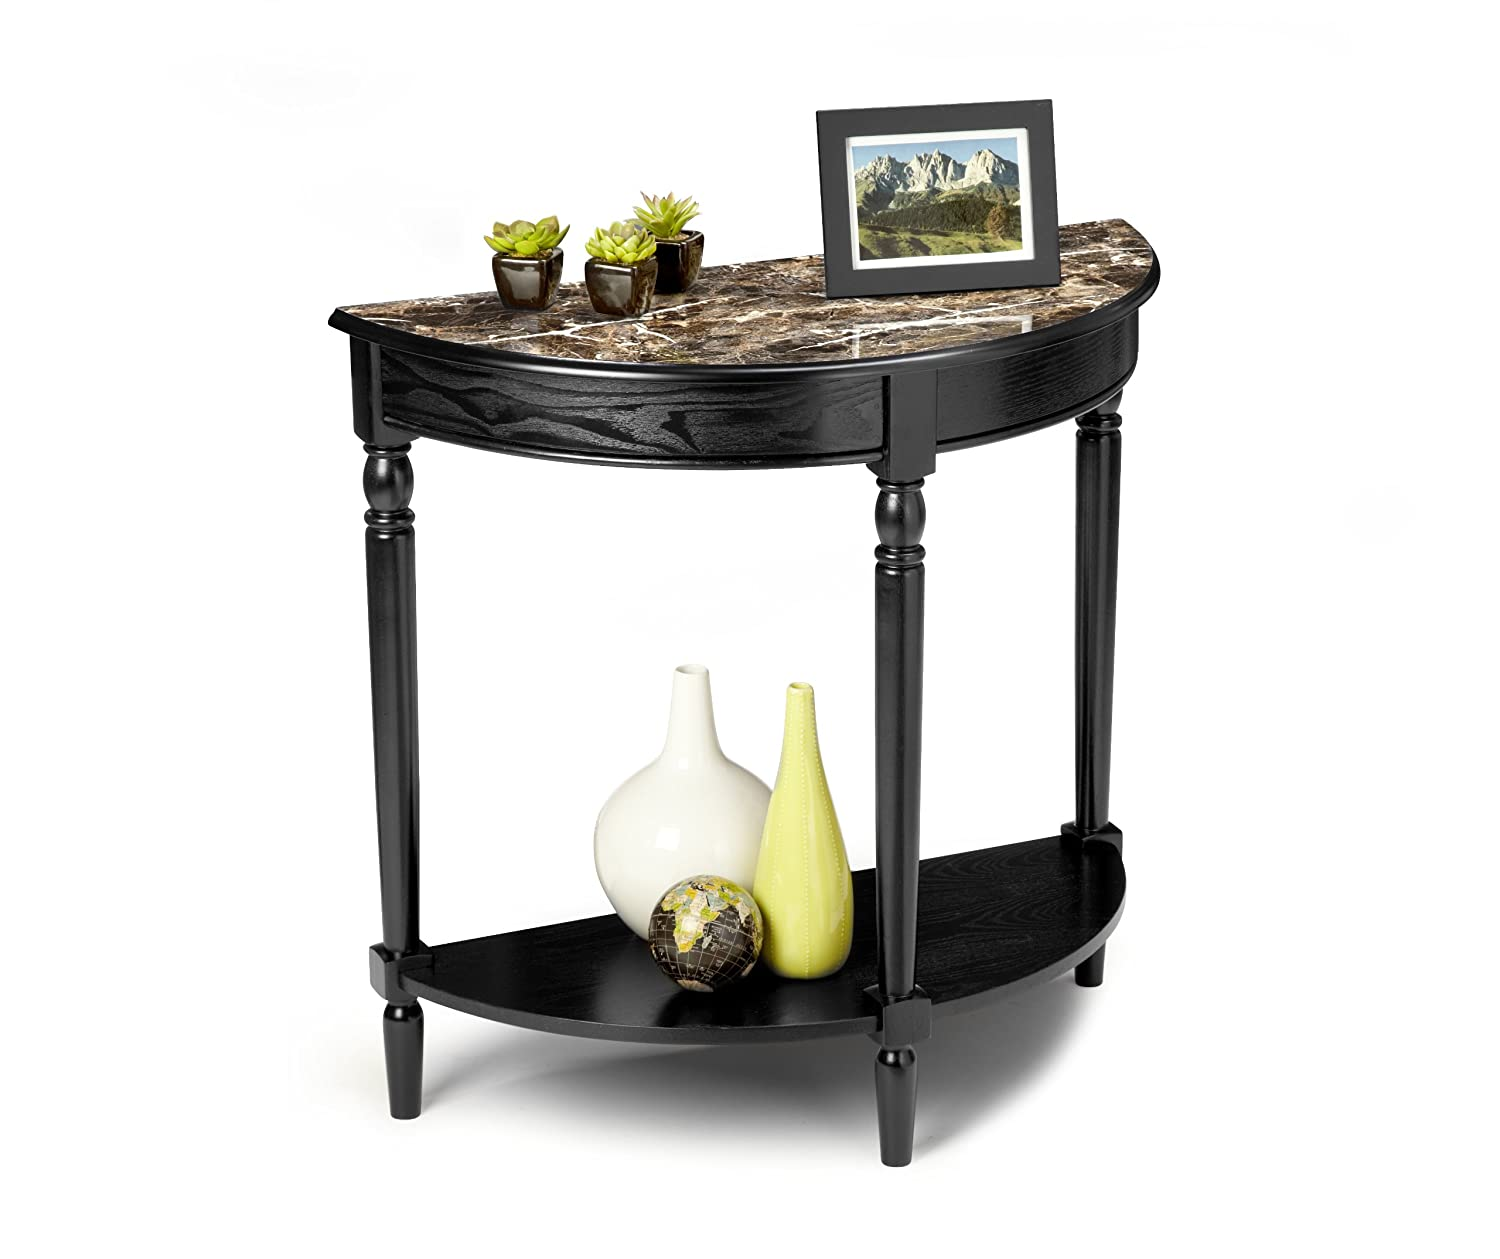 Ordinaire Amazon.com: Convenience Concepts M6042182 French Country Entryway Table,  Black Faux Marble Top: Kitchen U0026 Dining